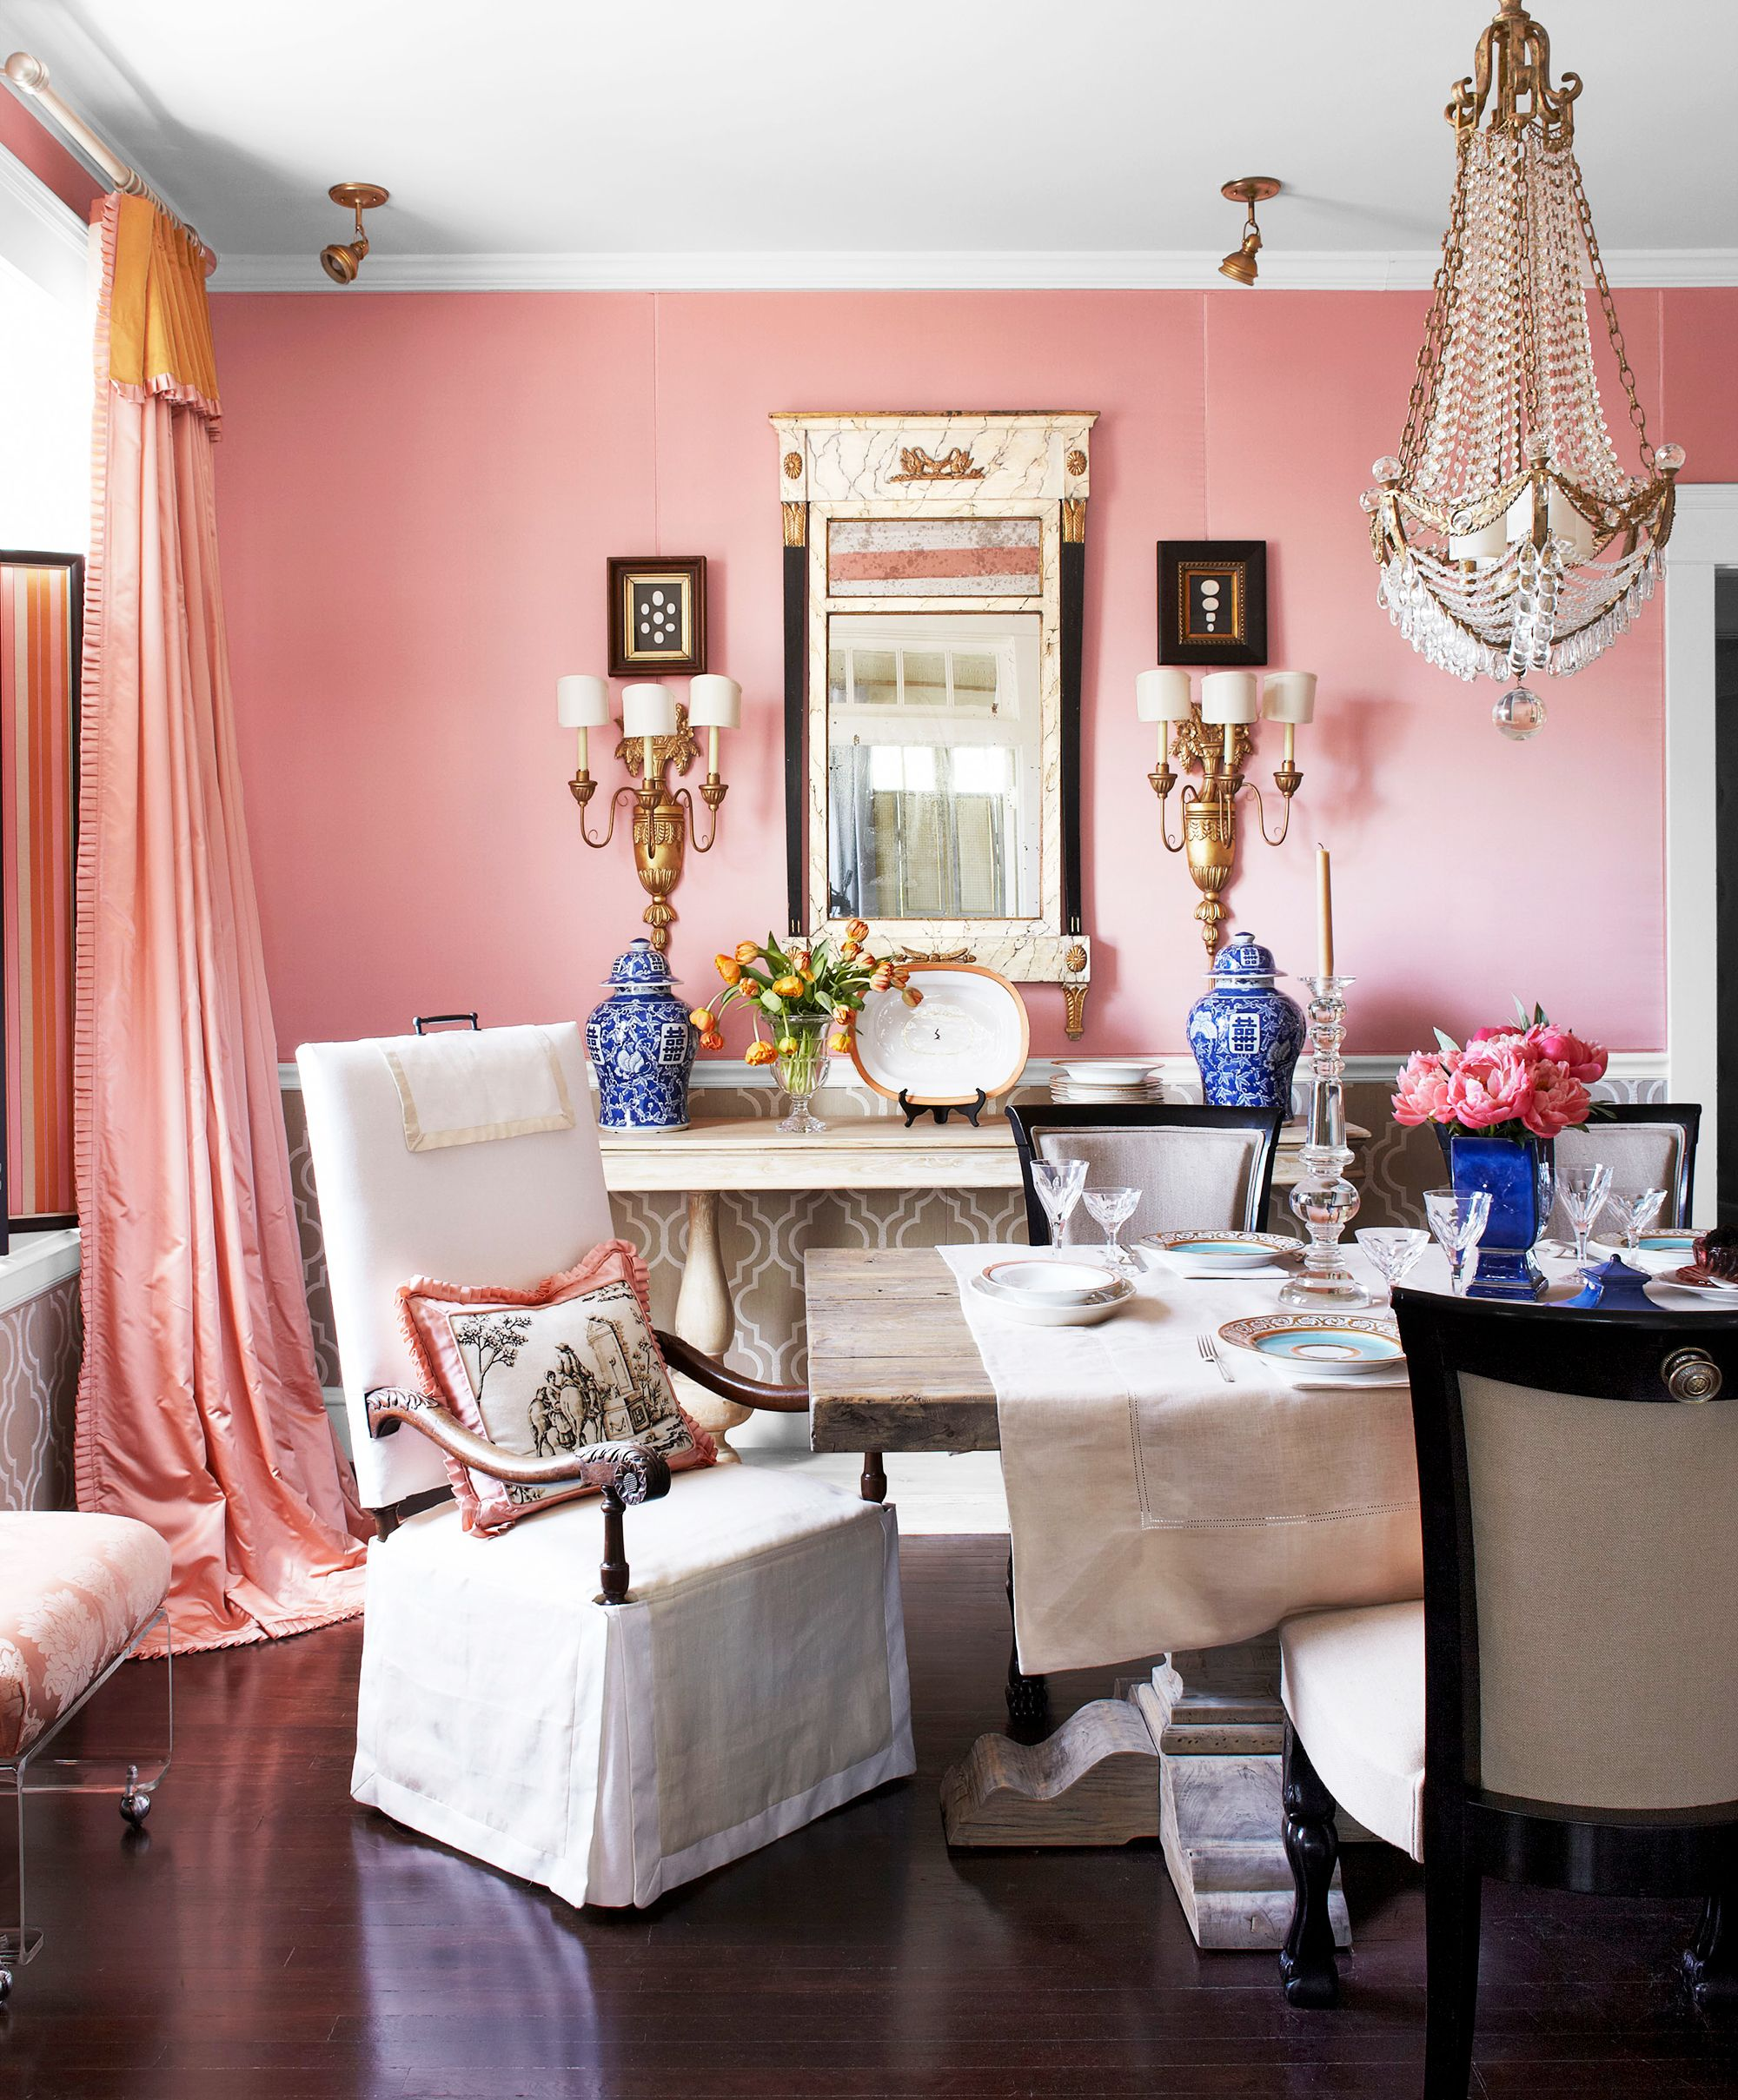 25 Examples Of French Country Decor French Country Interior Design